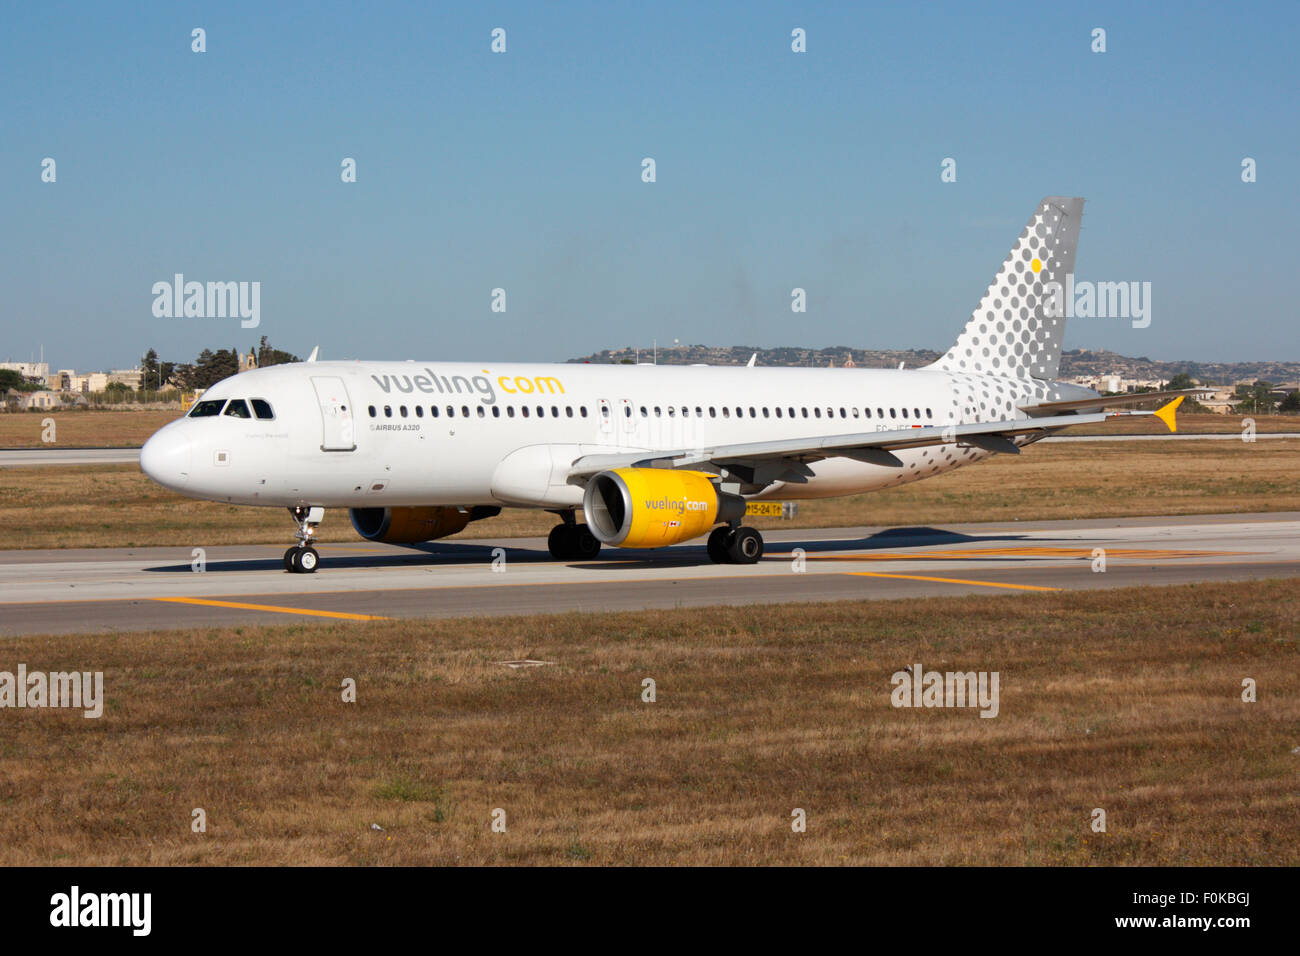 Airbus A320 jet plane belonging to the Spanish low cost airline Vueling, shown taxiing for departure from Malta - Stock Image